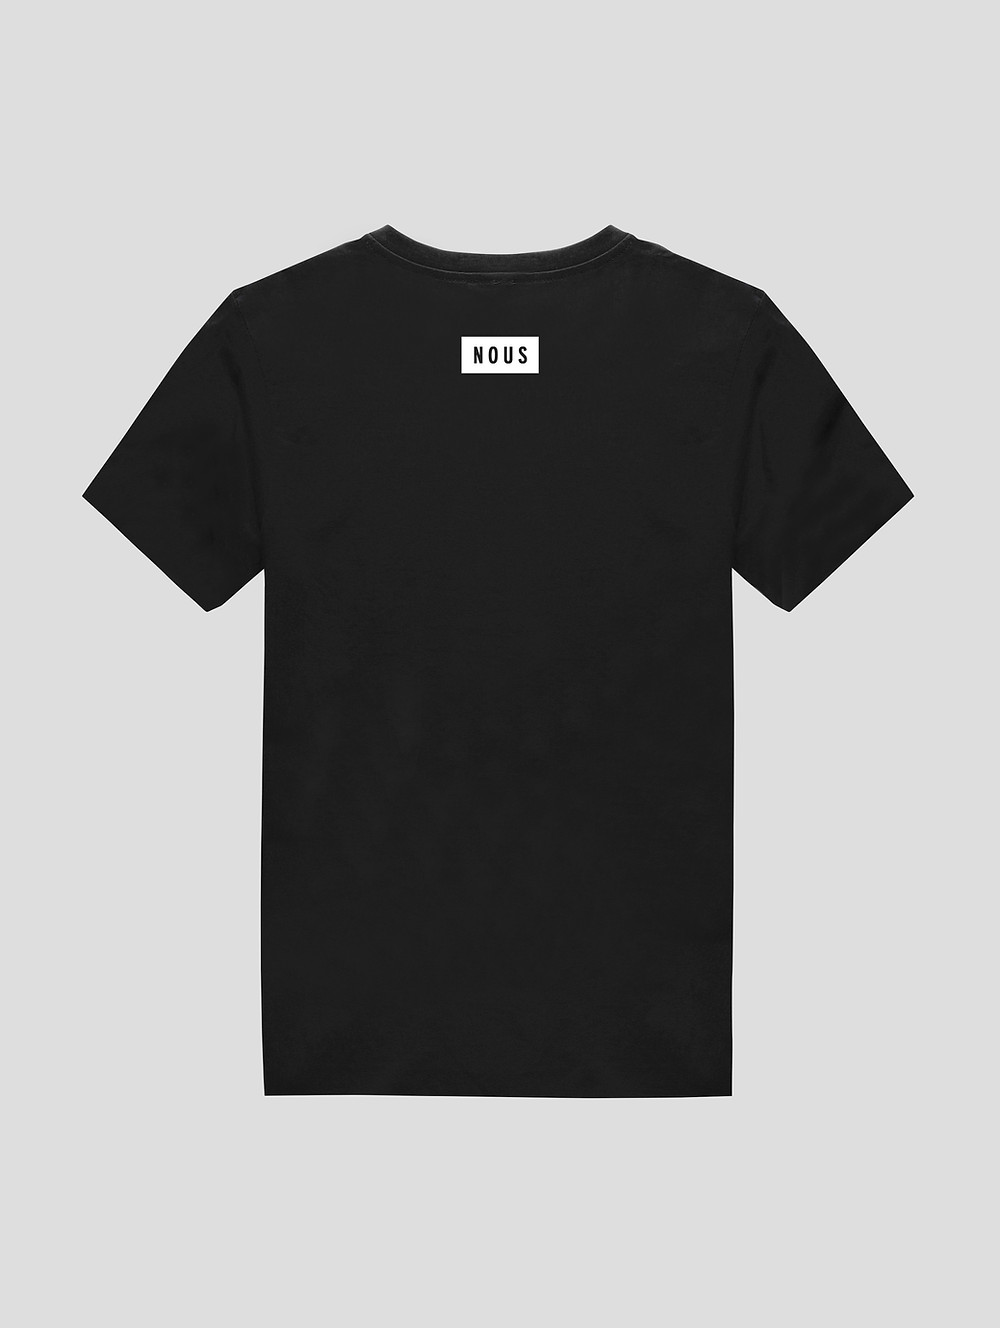 Black t-shirt as cause of allergic skin reactions